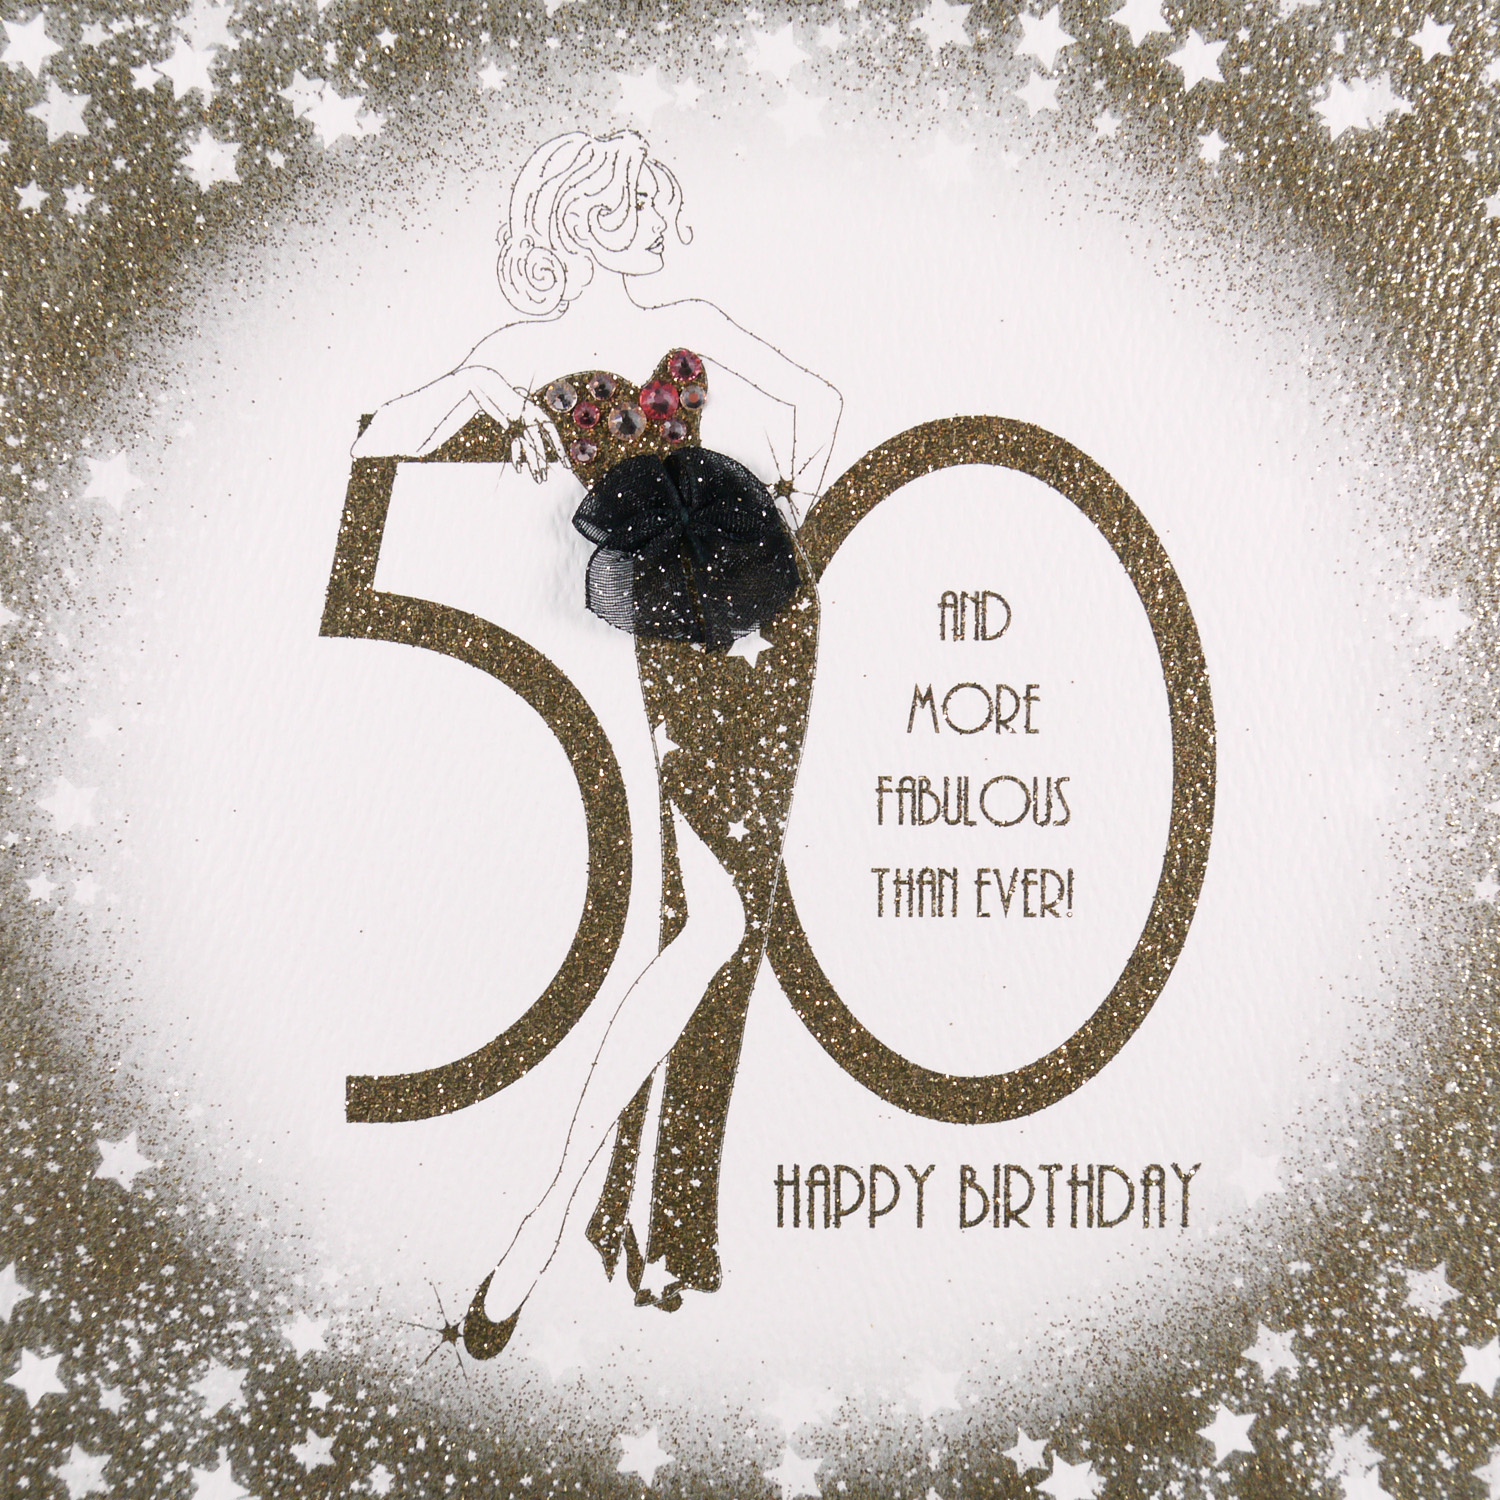 Fab 50 Birthday: 50 & More Fabulous Than Ever